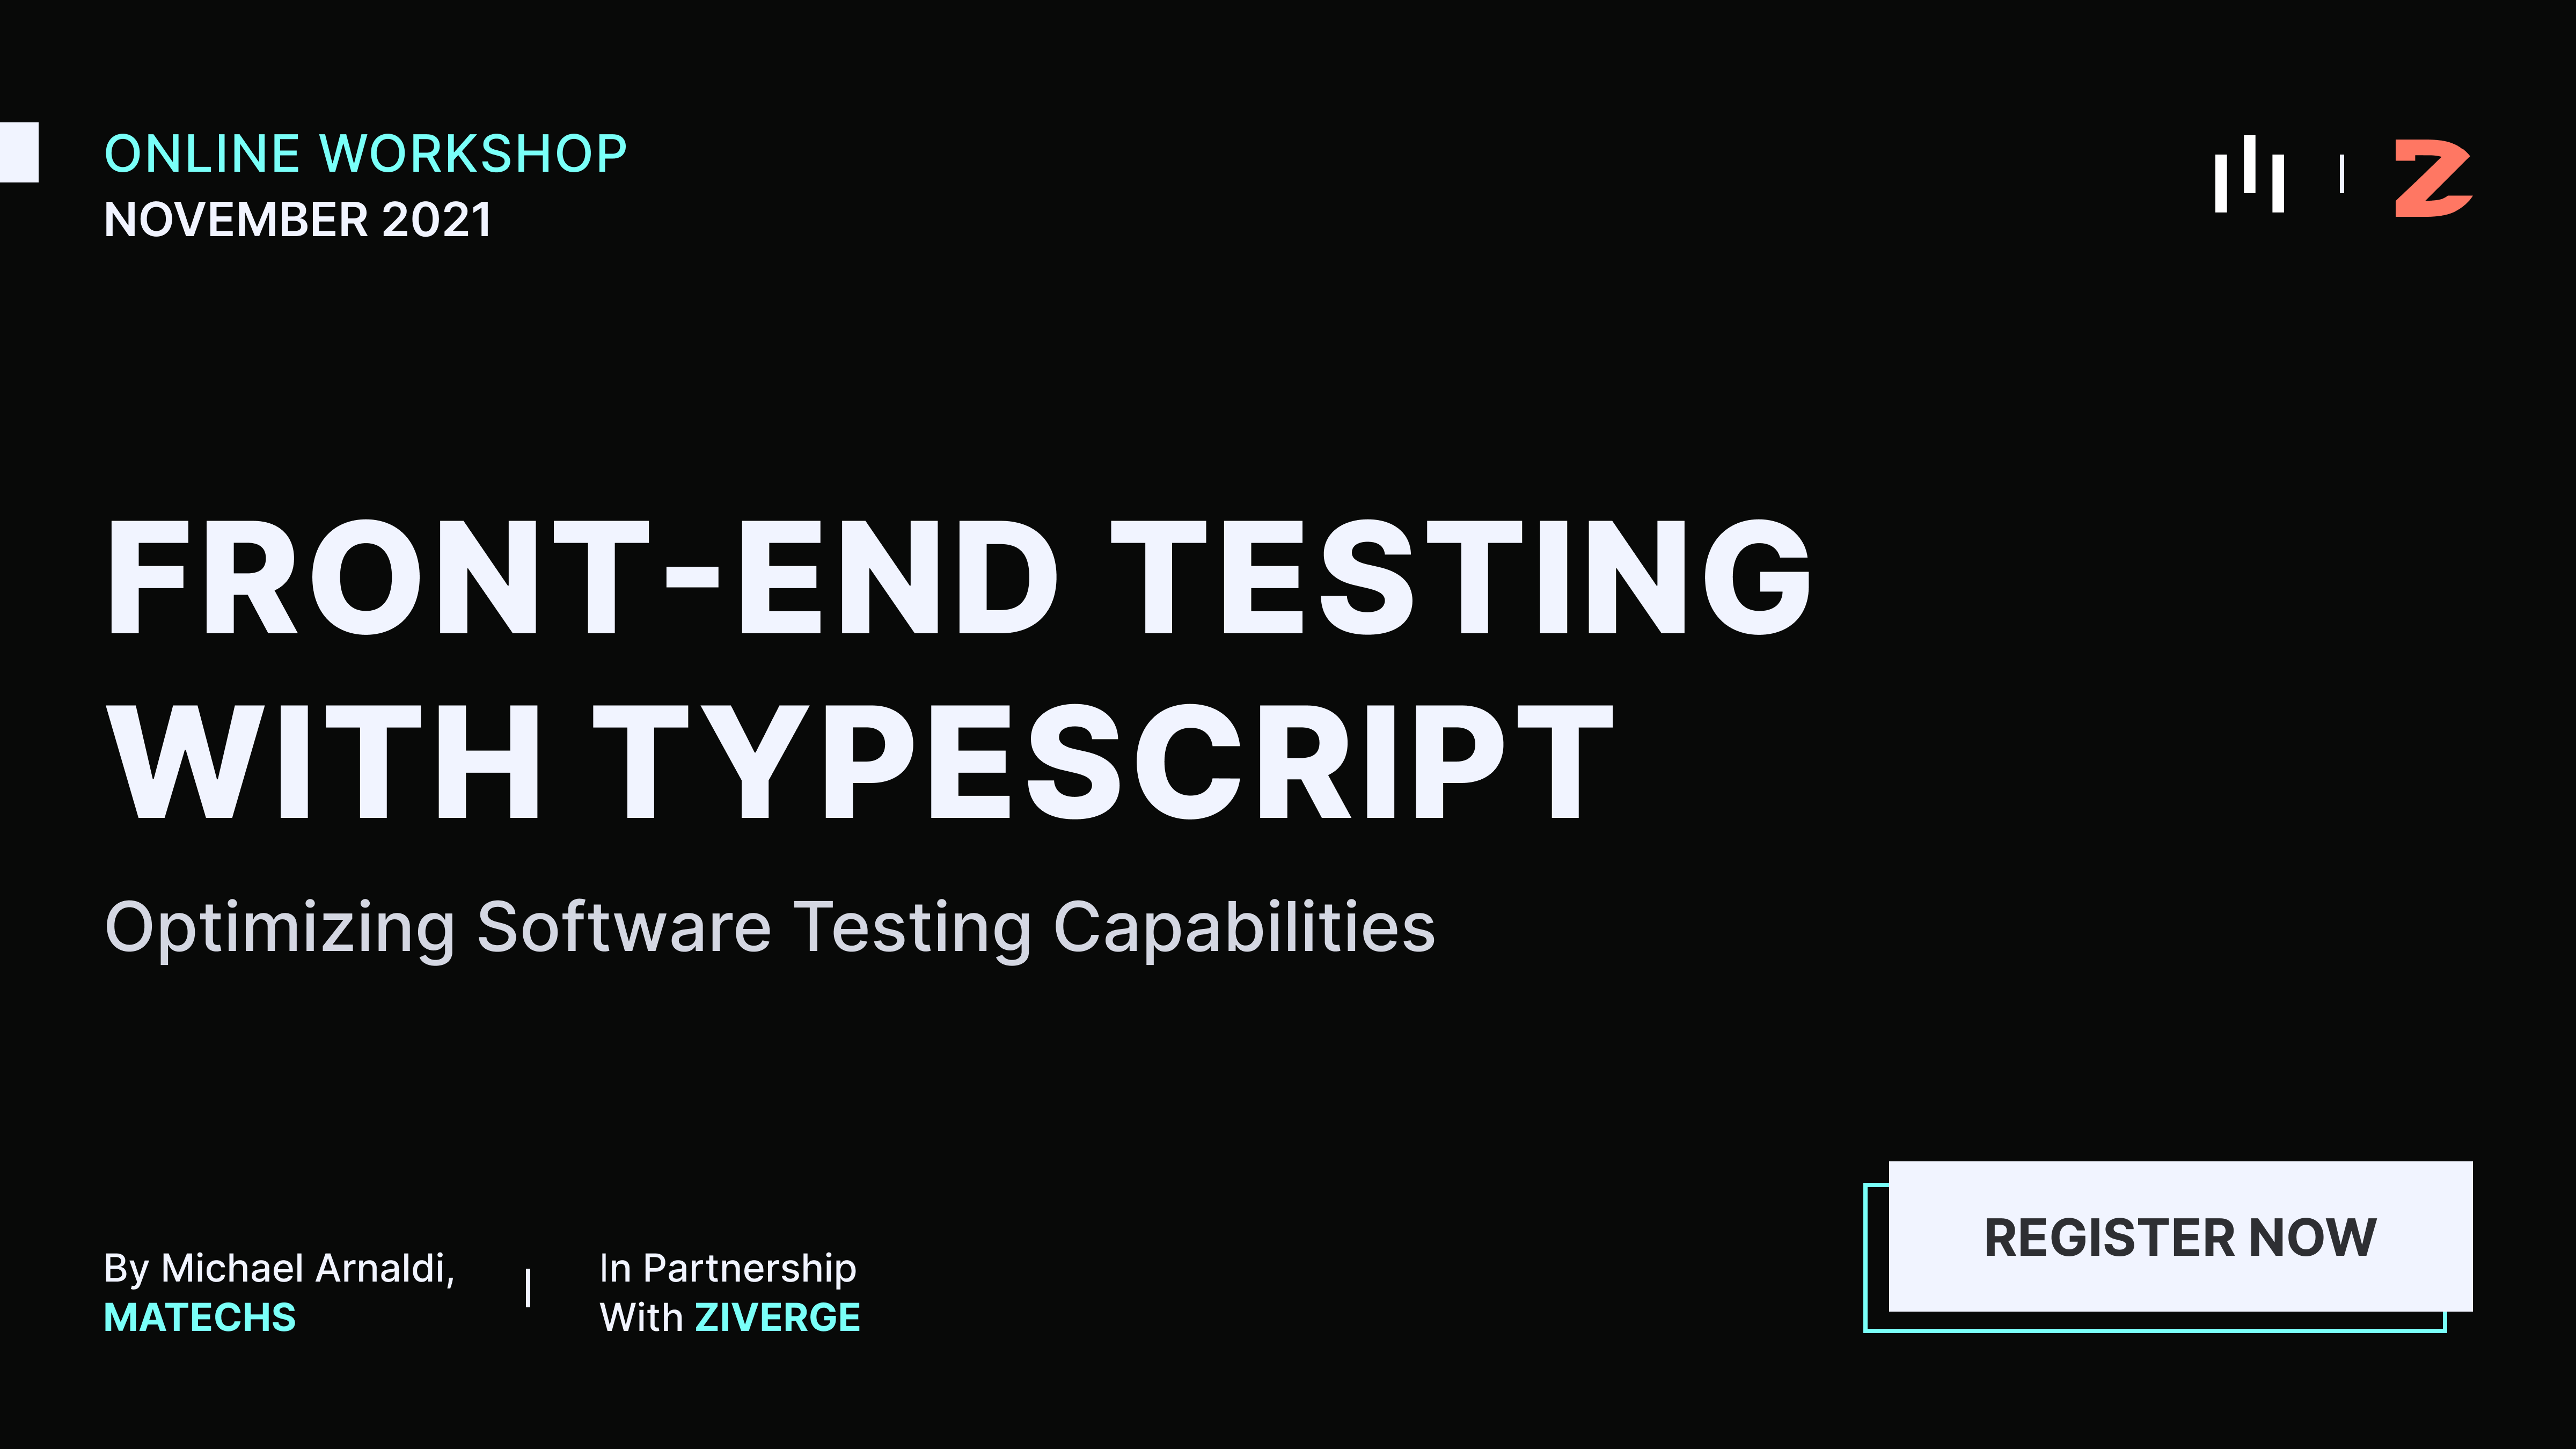 Frontend Testing With Typescript Workshop